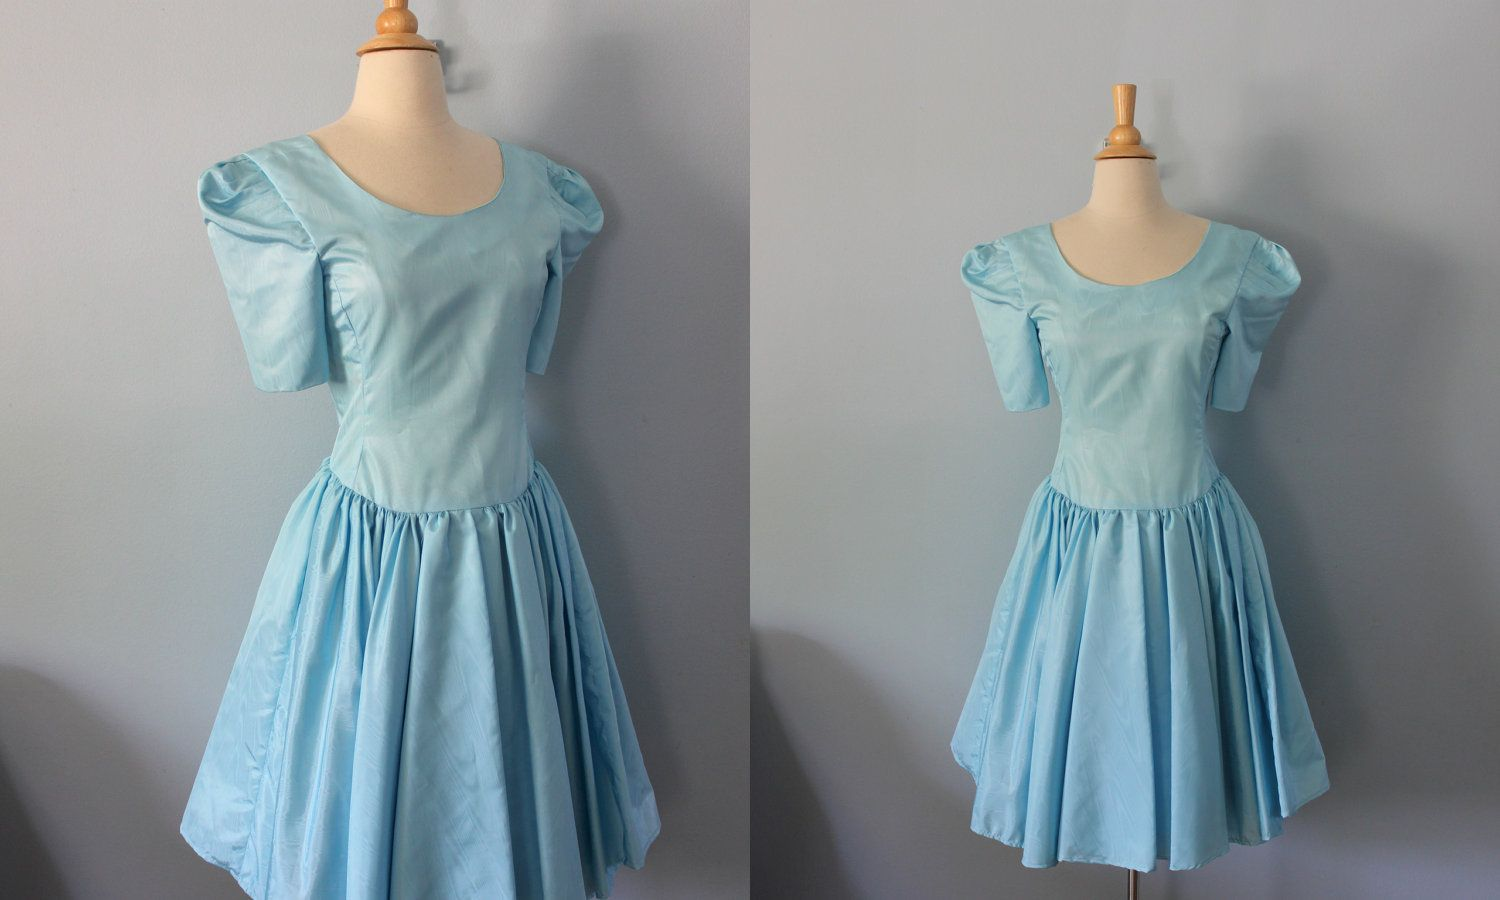 1980s party dress / 80s prom dress / blue taffeta dress | Prom ...